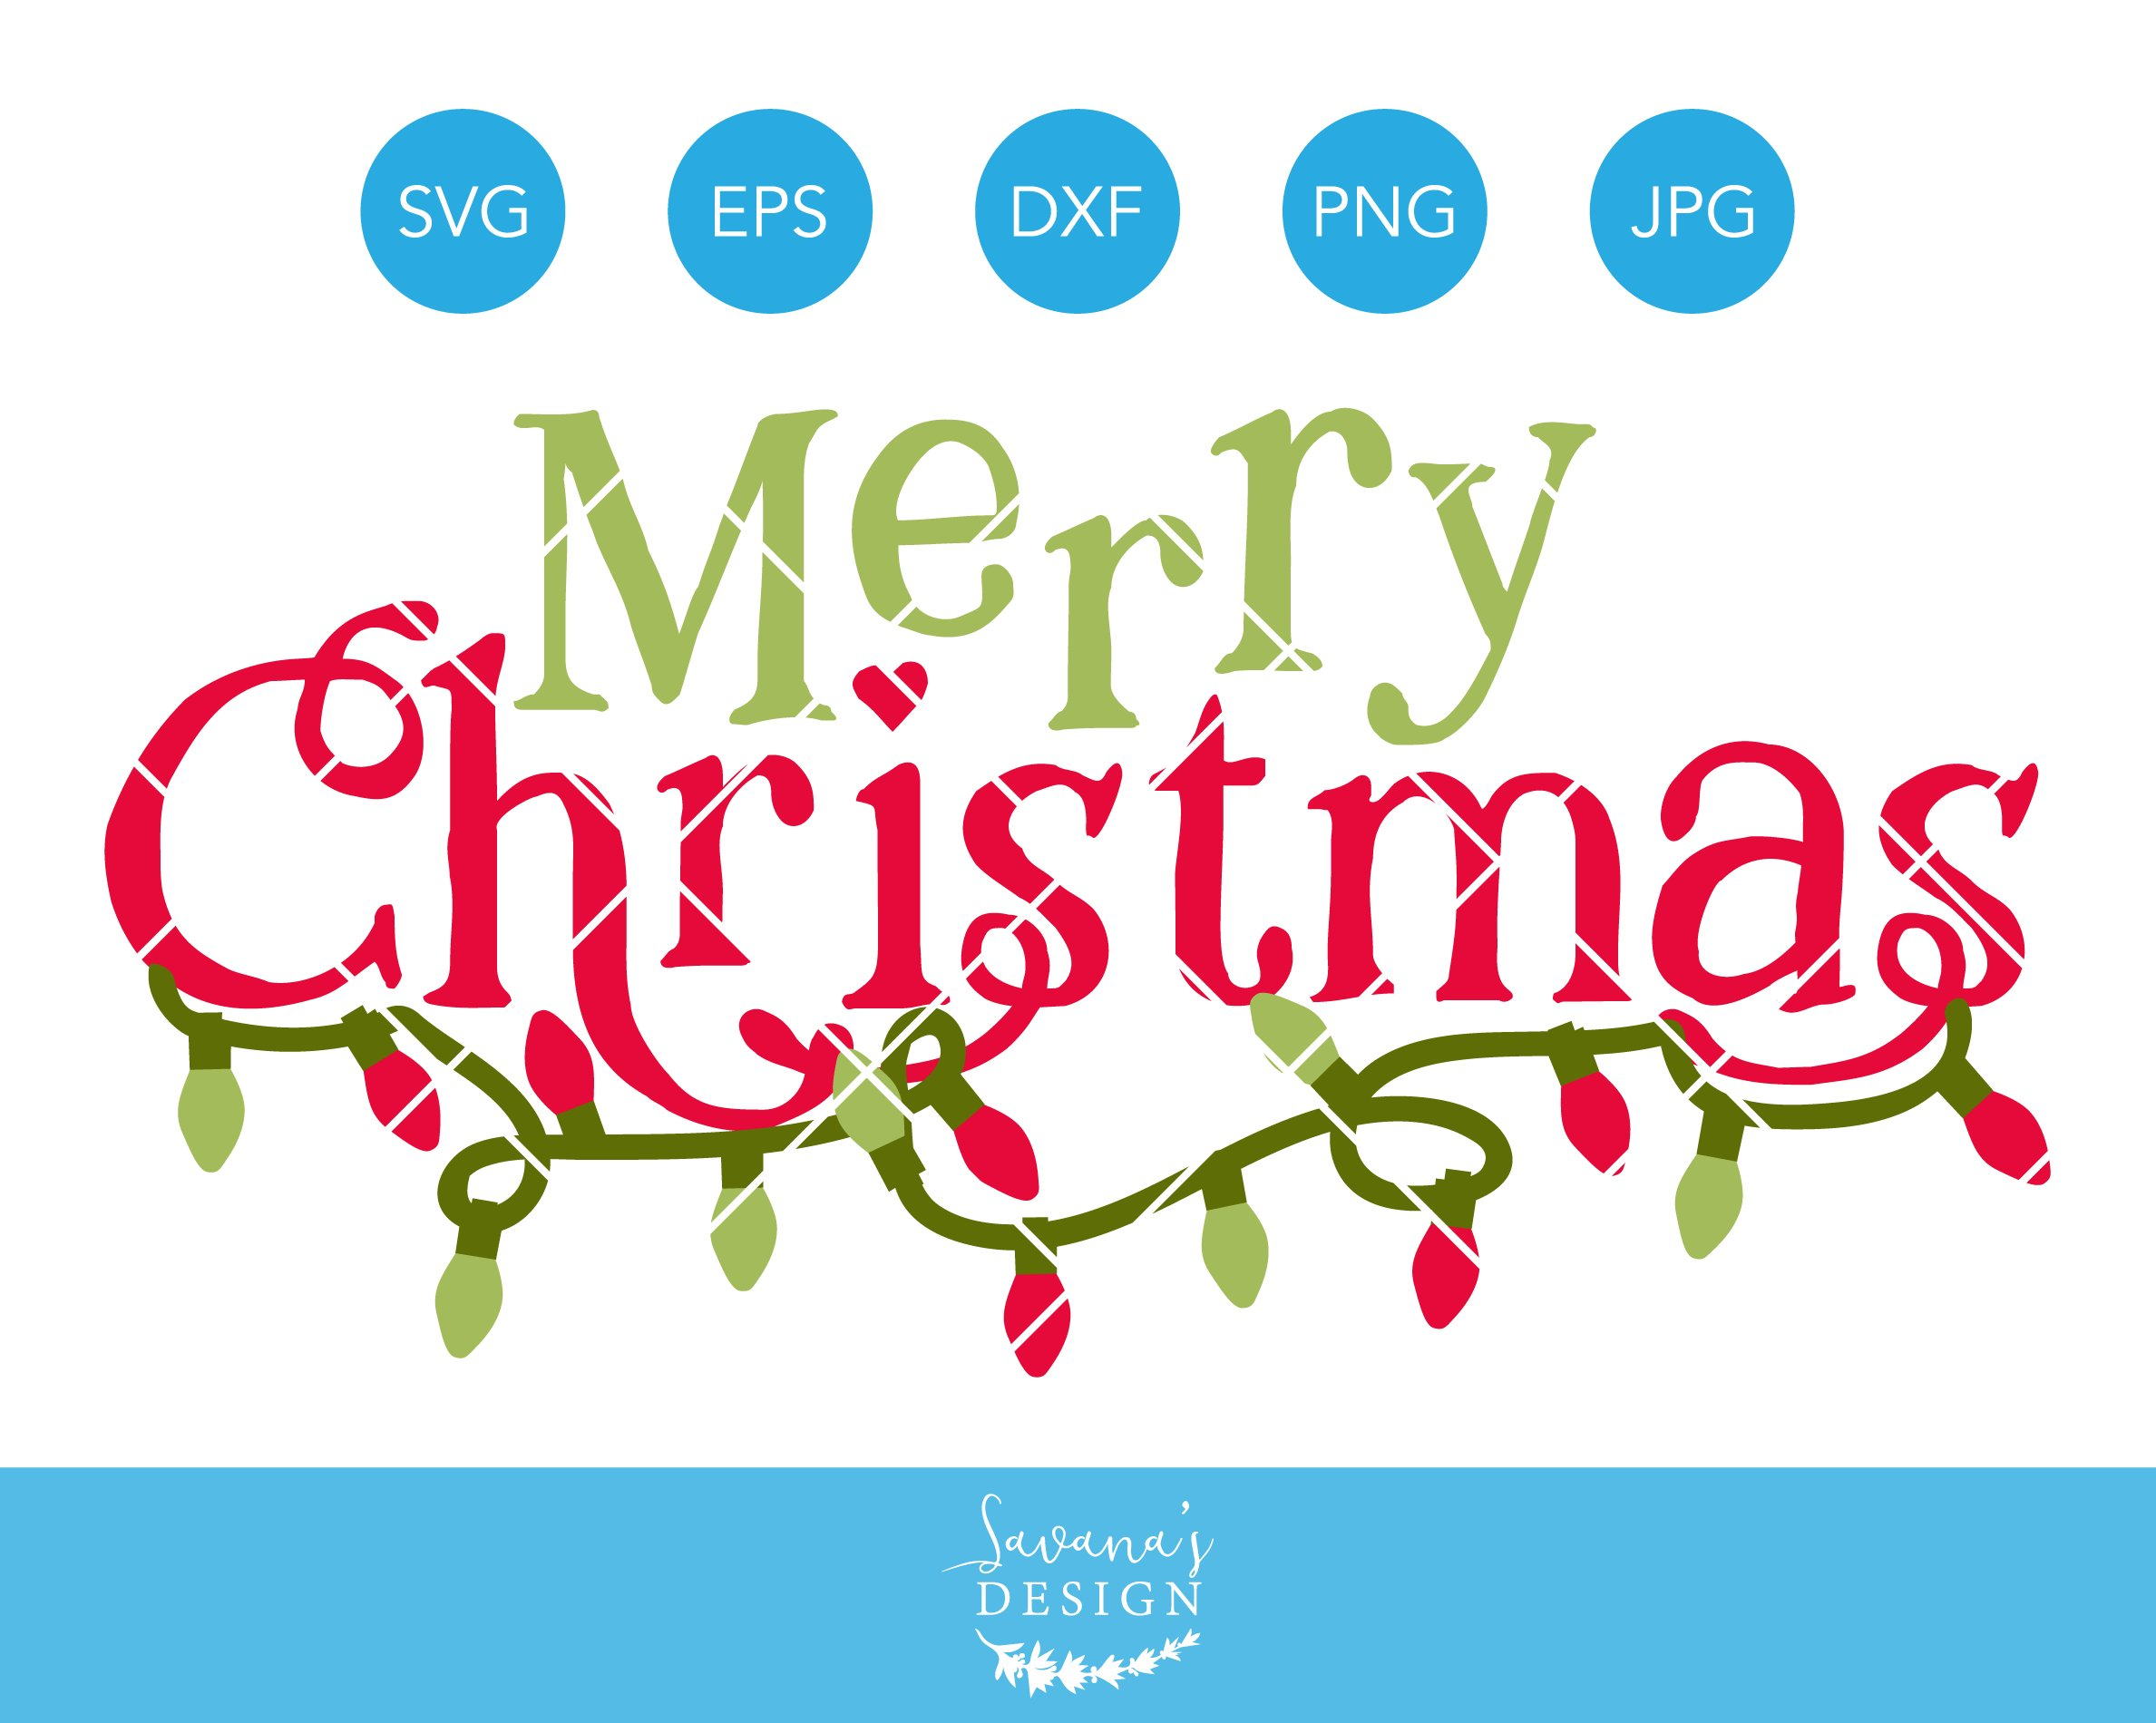 Download Merry Christmas SVG Cut File Cricut ~ Illustrations ...